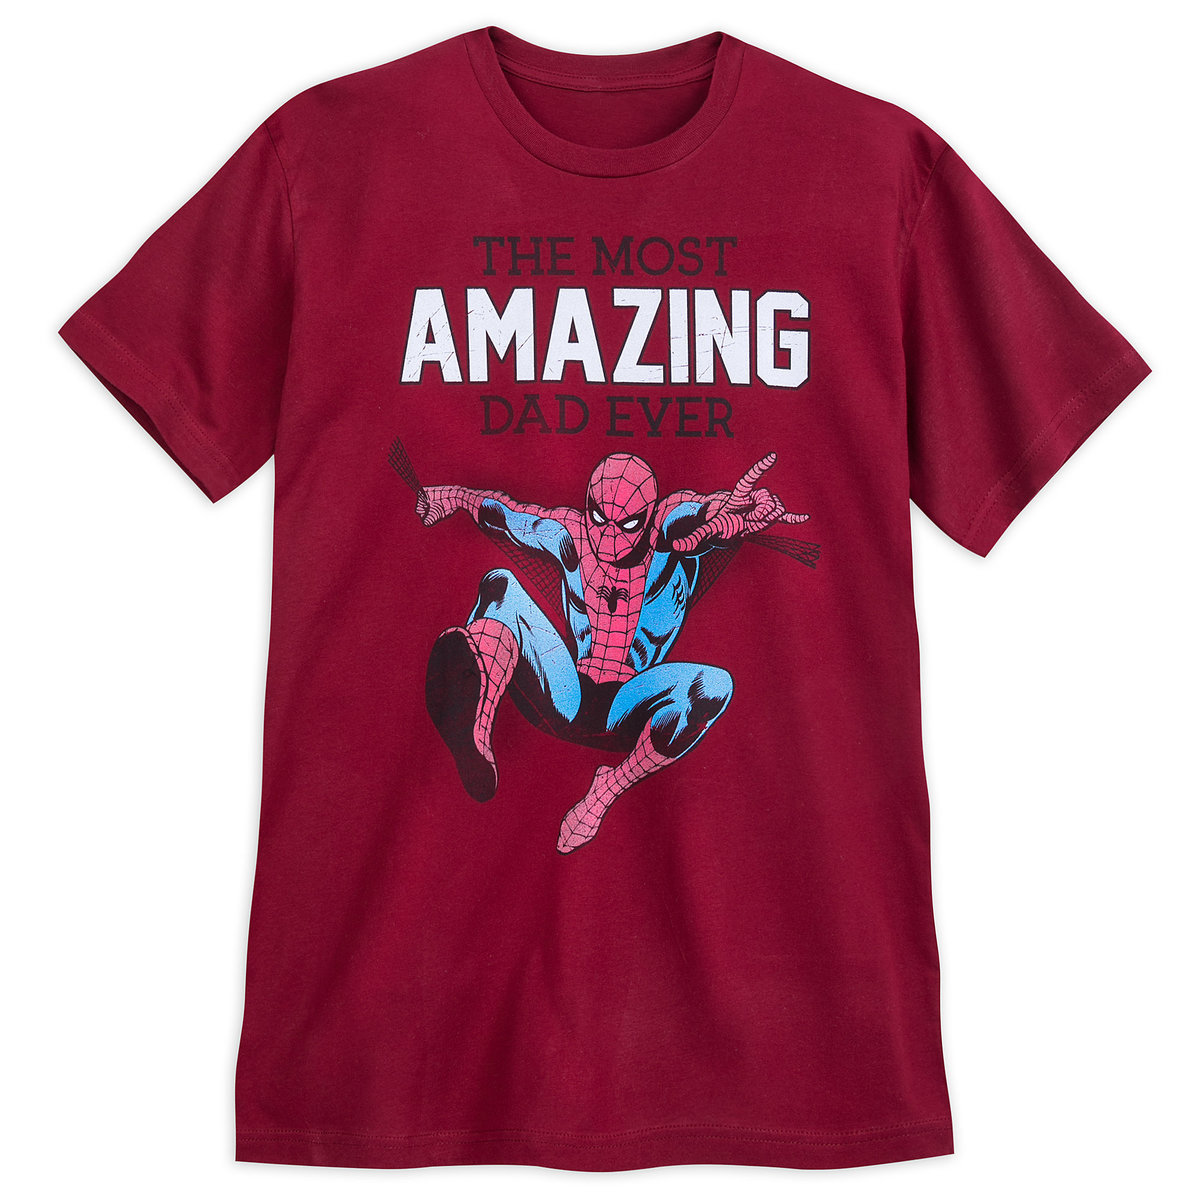 a26cfc09 Spider-Man ''Amazing Dad'' T-Shirt for Adults | shopDisney